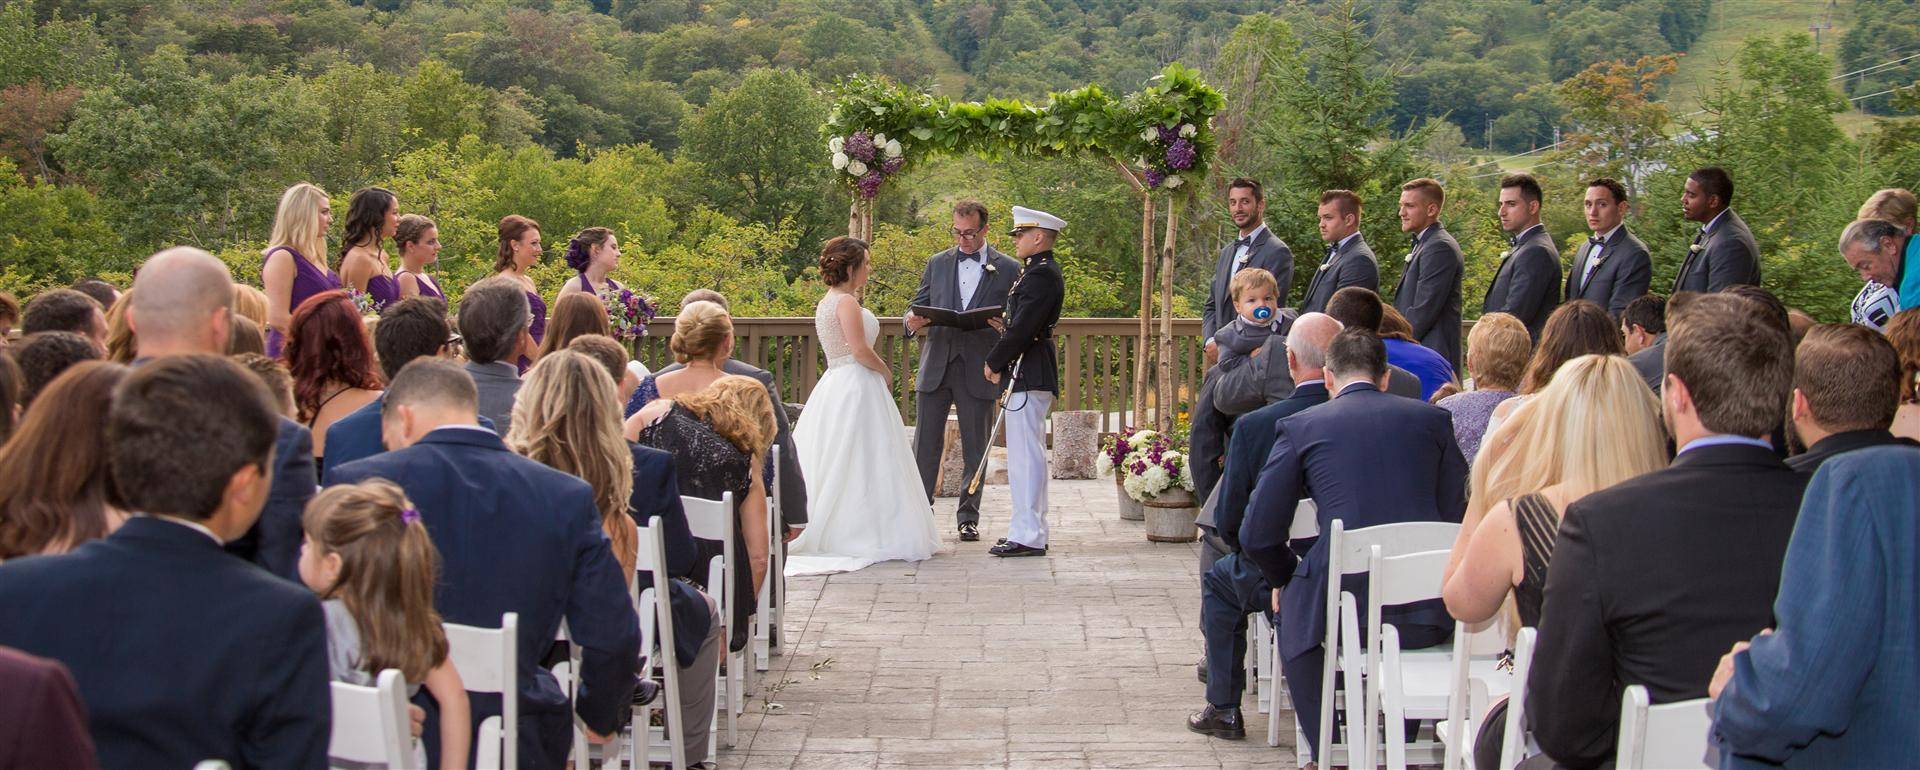 Wedding And Events Venues In Vermont Spruce Peak Weddings